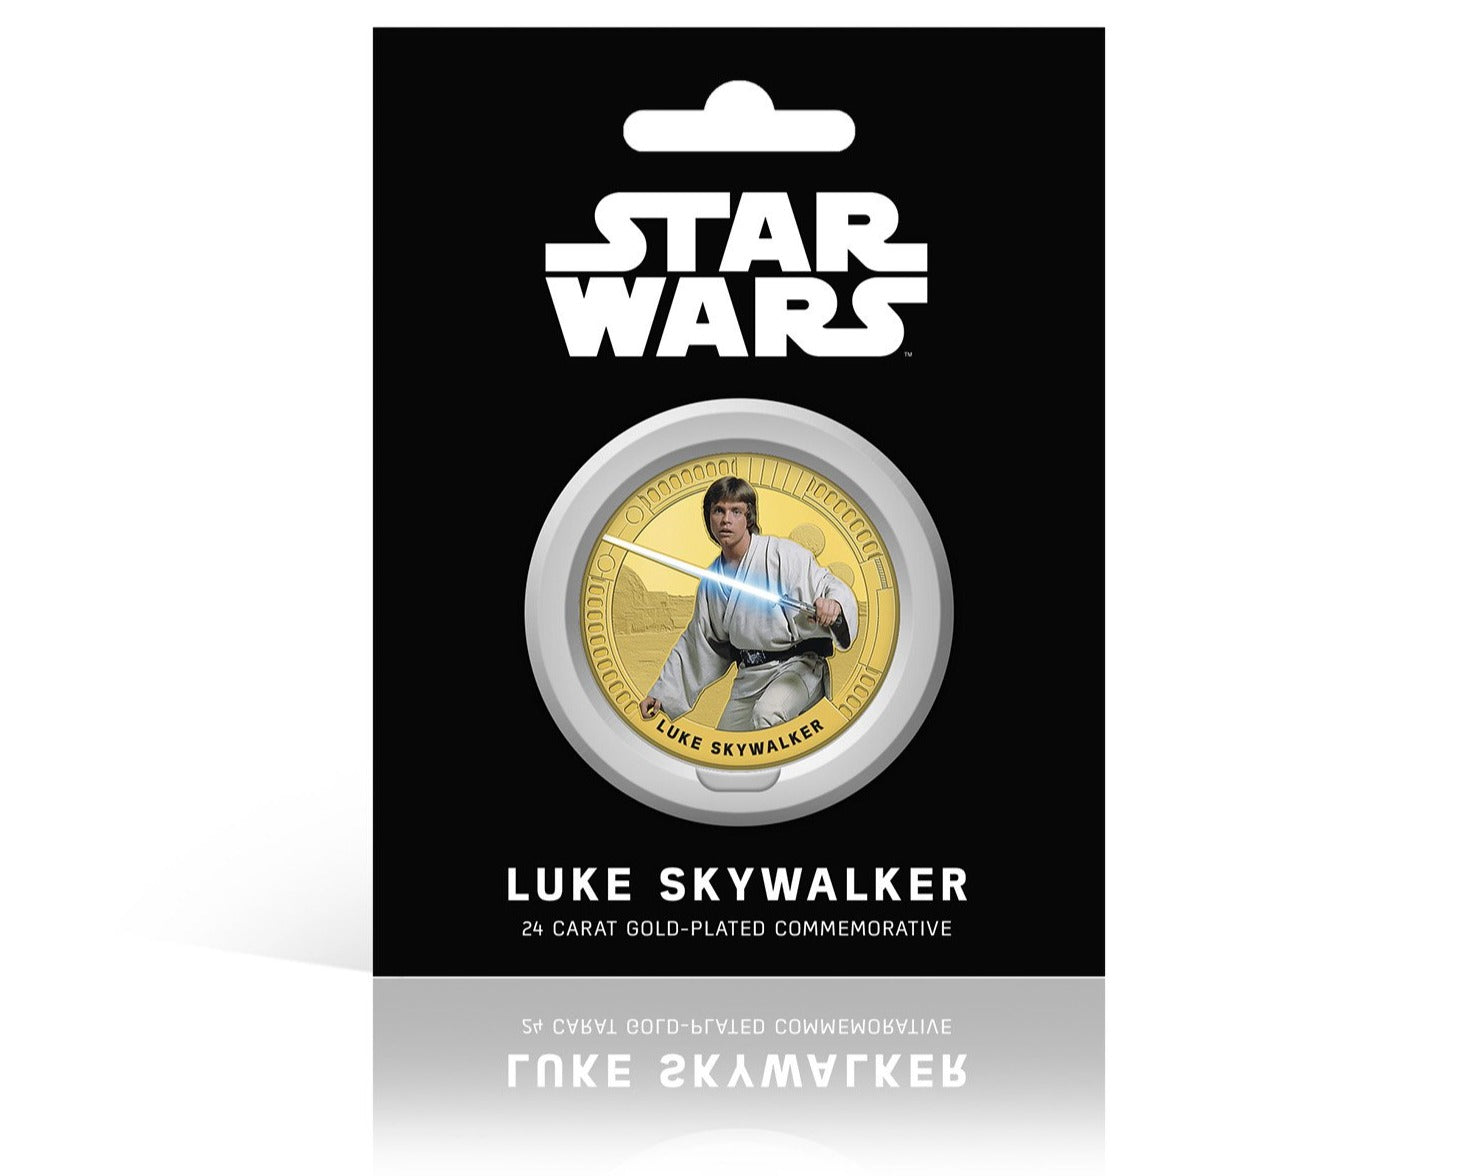 Star Wars Trilogía Original Episodios IV - VI - Luke Skywalker - Moneda / Medalla conmemorativa acuñada con baño en Oro 24 quilates y coloreada a 4 colores - 44mm